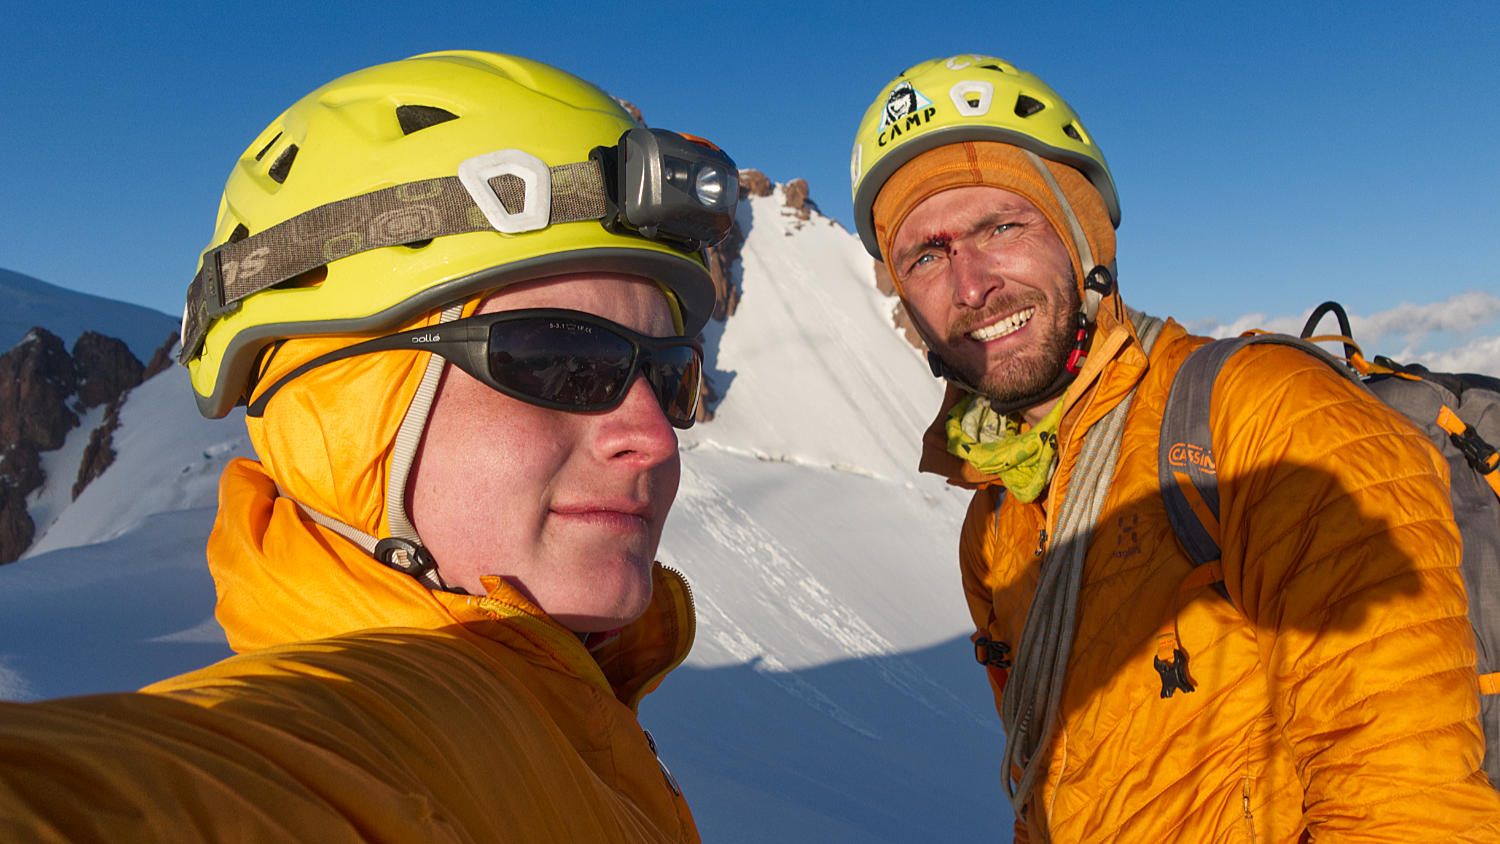 Grisha Chshukin and Kirill Belotserkovskiy on the summit of mt Trud